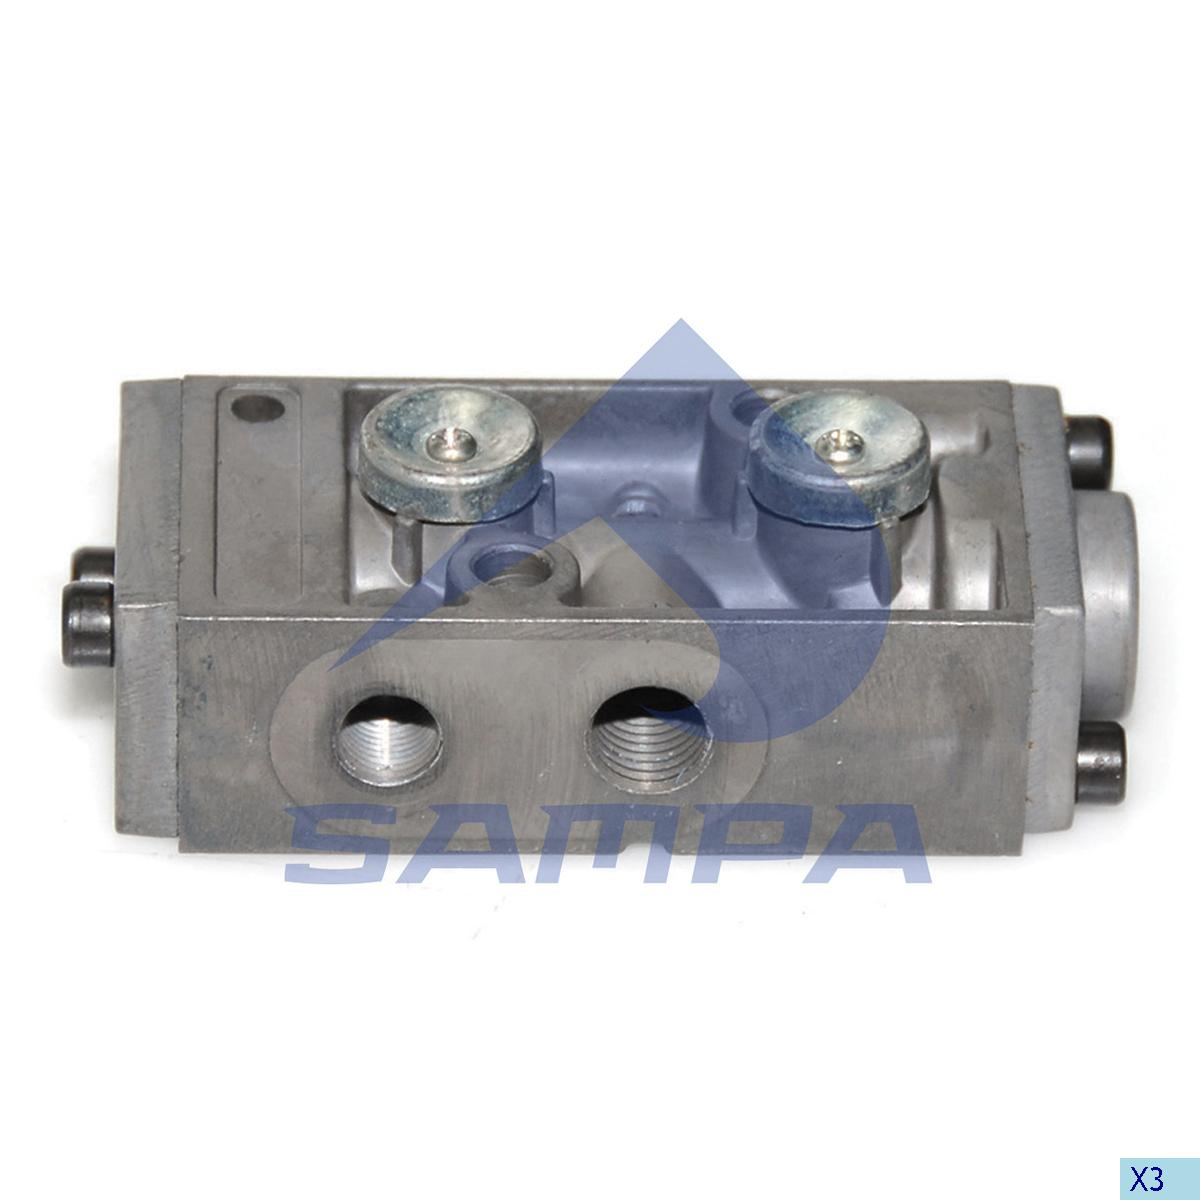 Valve, Gear Box Housing, Man, Gear Box